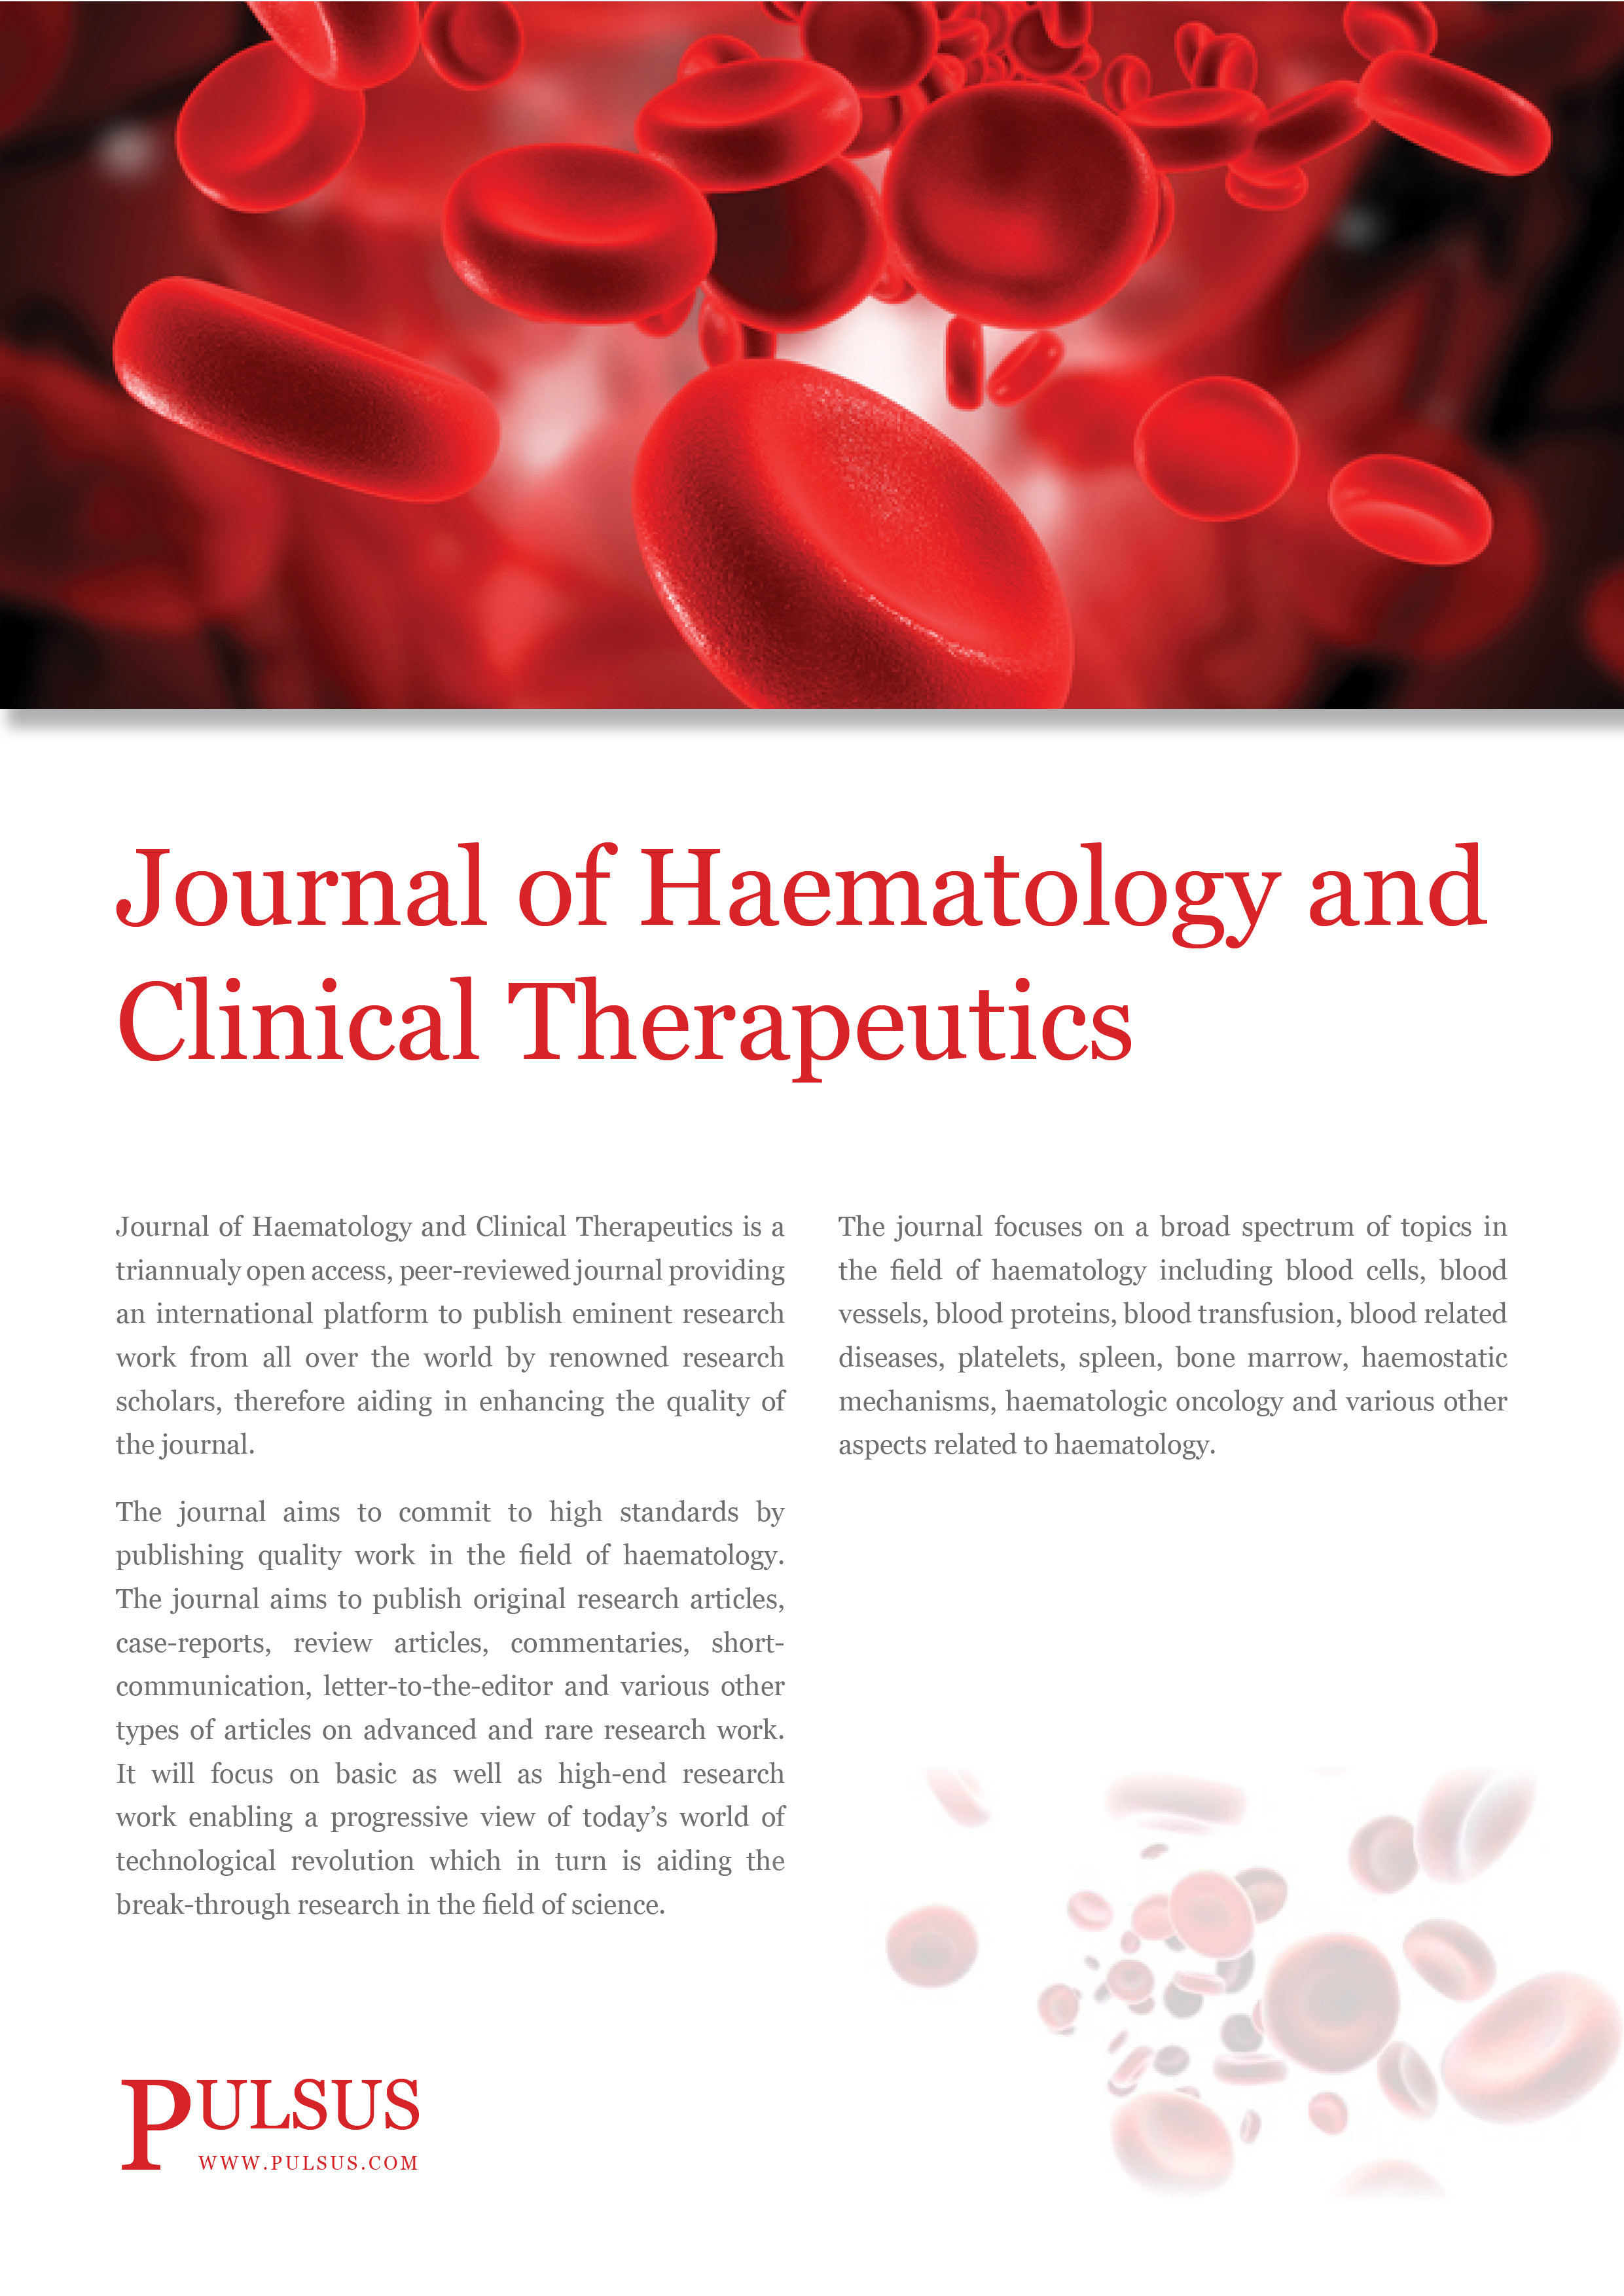 Journal of Hematology and Clinical Therapeutics